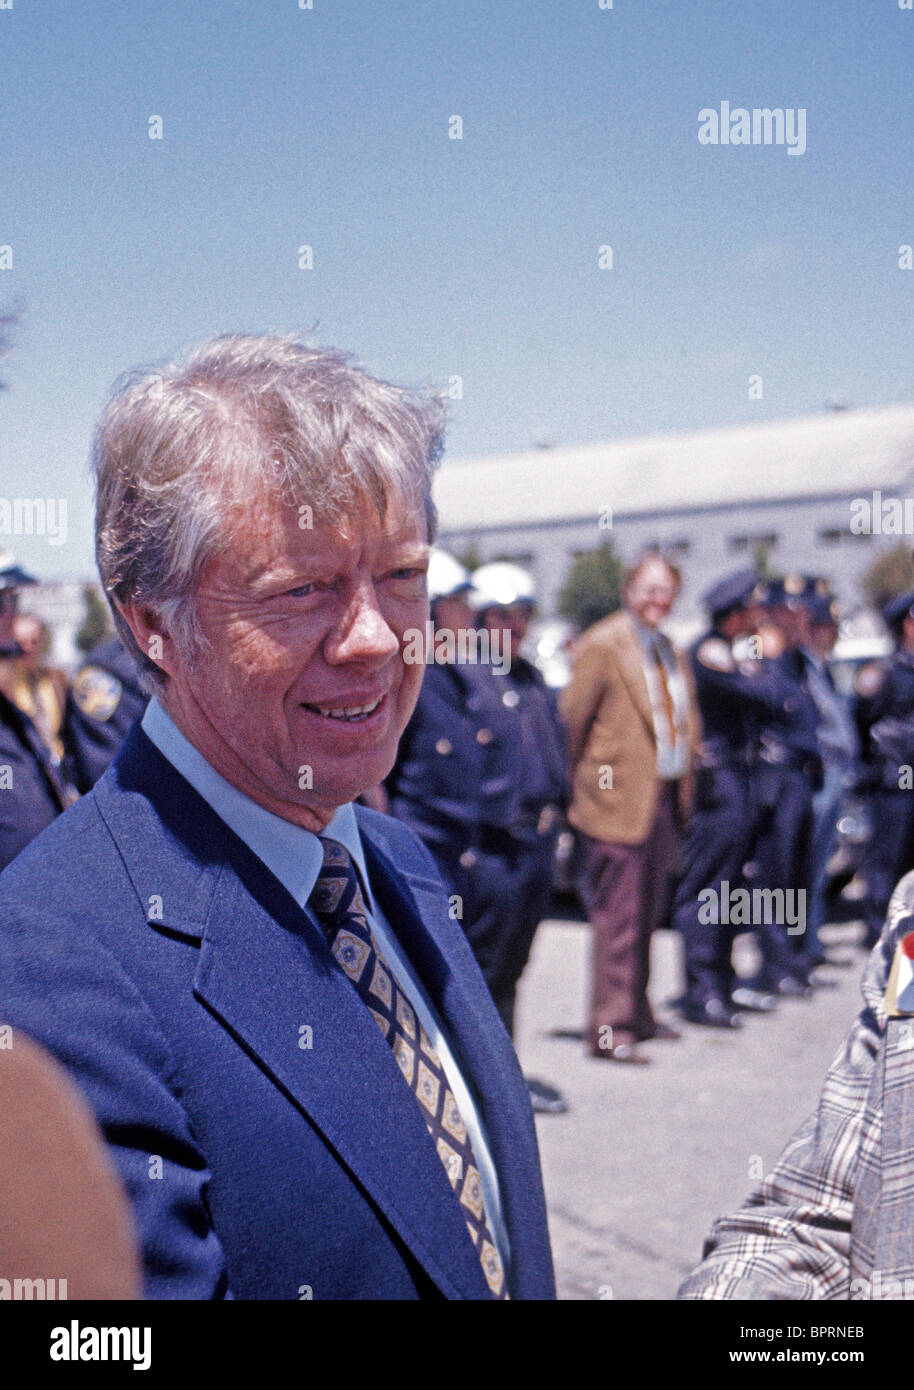 Democratic Presidential candidate, Jimmy Carter, campaigns in San Francisco California, USA, 1976 - Stock Image